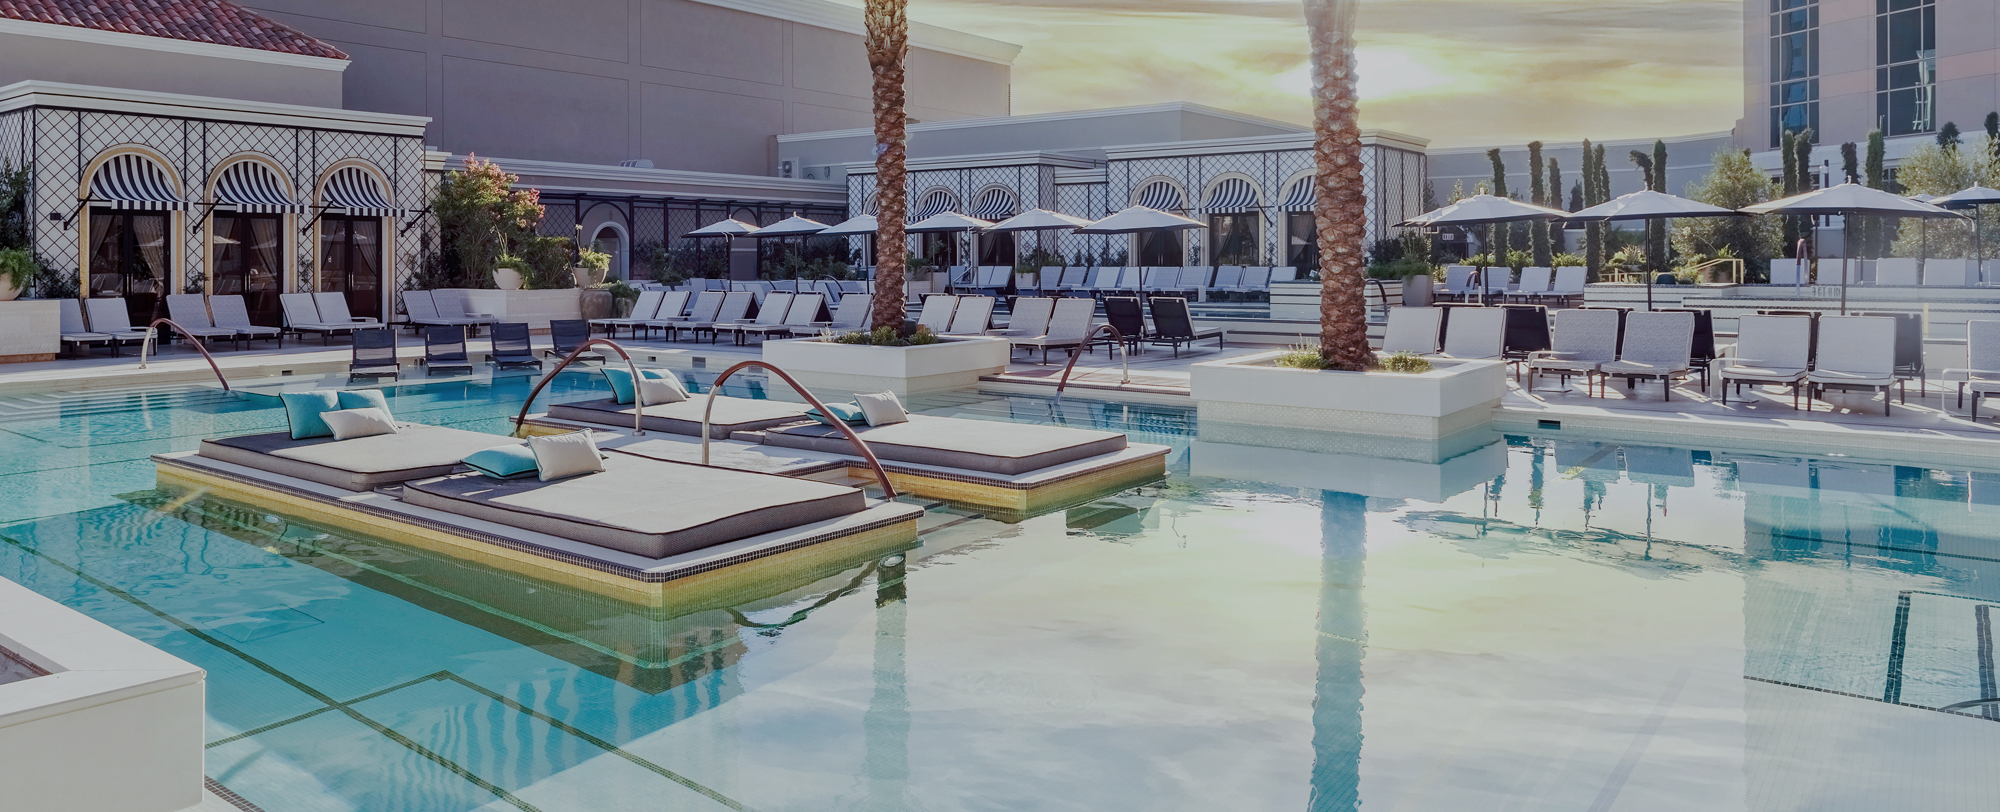 Astounding The Palazzo Las Vegas Pools Las Vegas Hotel Pools Gmtry Best Dining Table And Chair Ideas Images Gmtryco